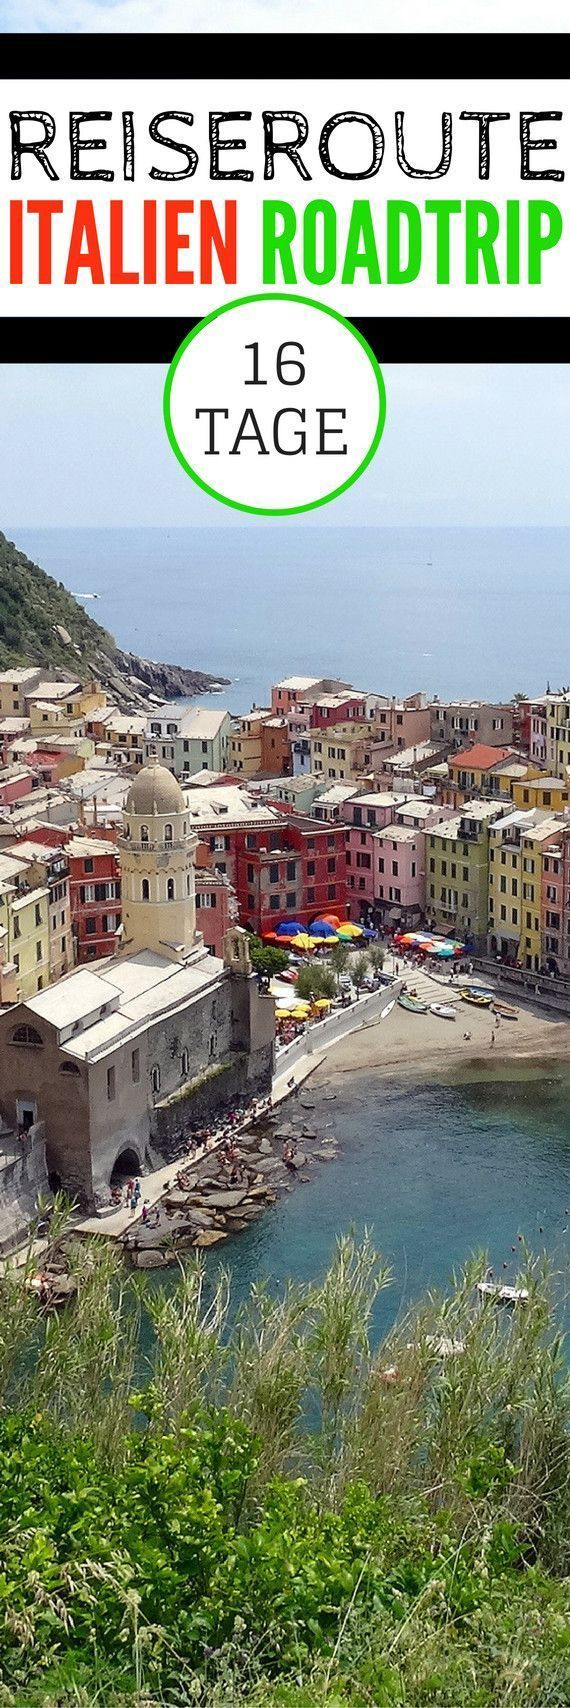 Itinerary - 16 days by car through Italy    TRIP TO THE PLANET#car #days #italy #itinerary #planet #trip